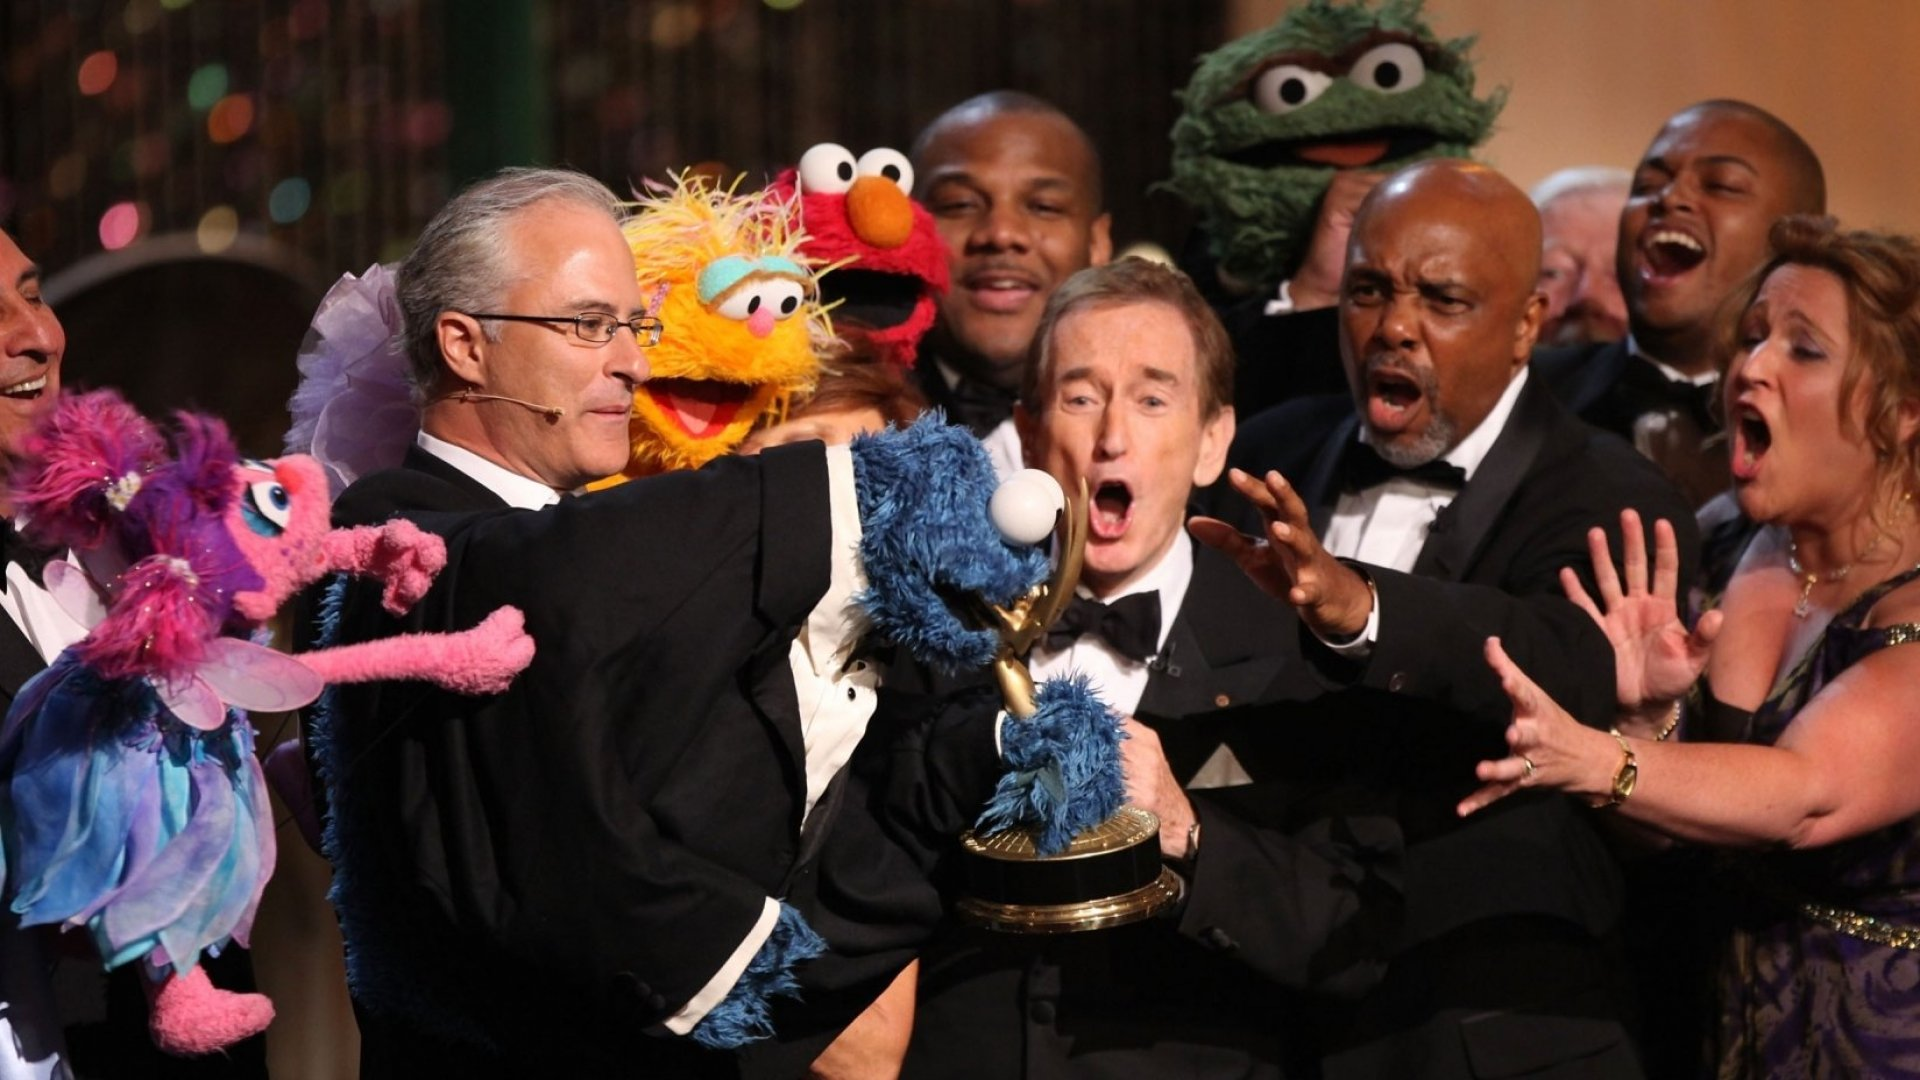 Fans Were Outraged After Sesame Street Fired 3 Longtime, Beloved Cast Members. Then This Happened